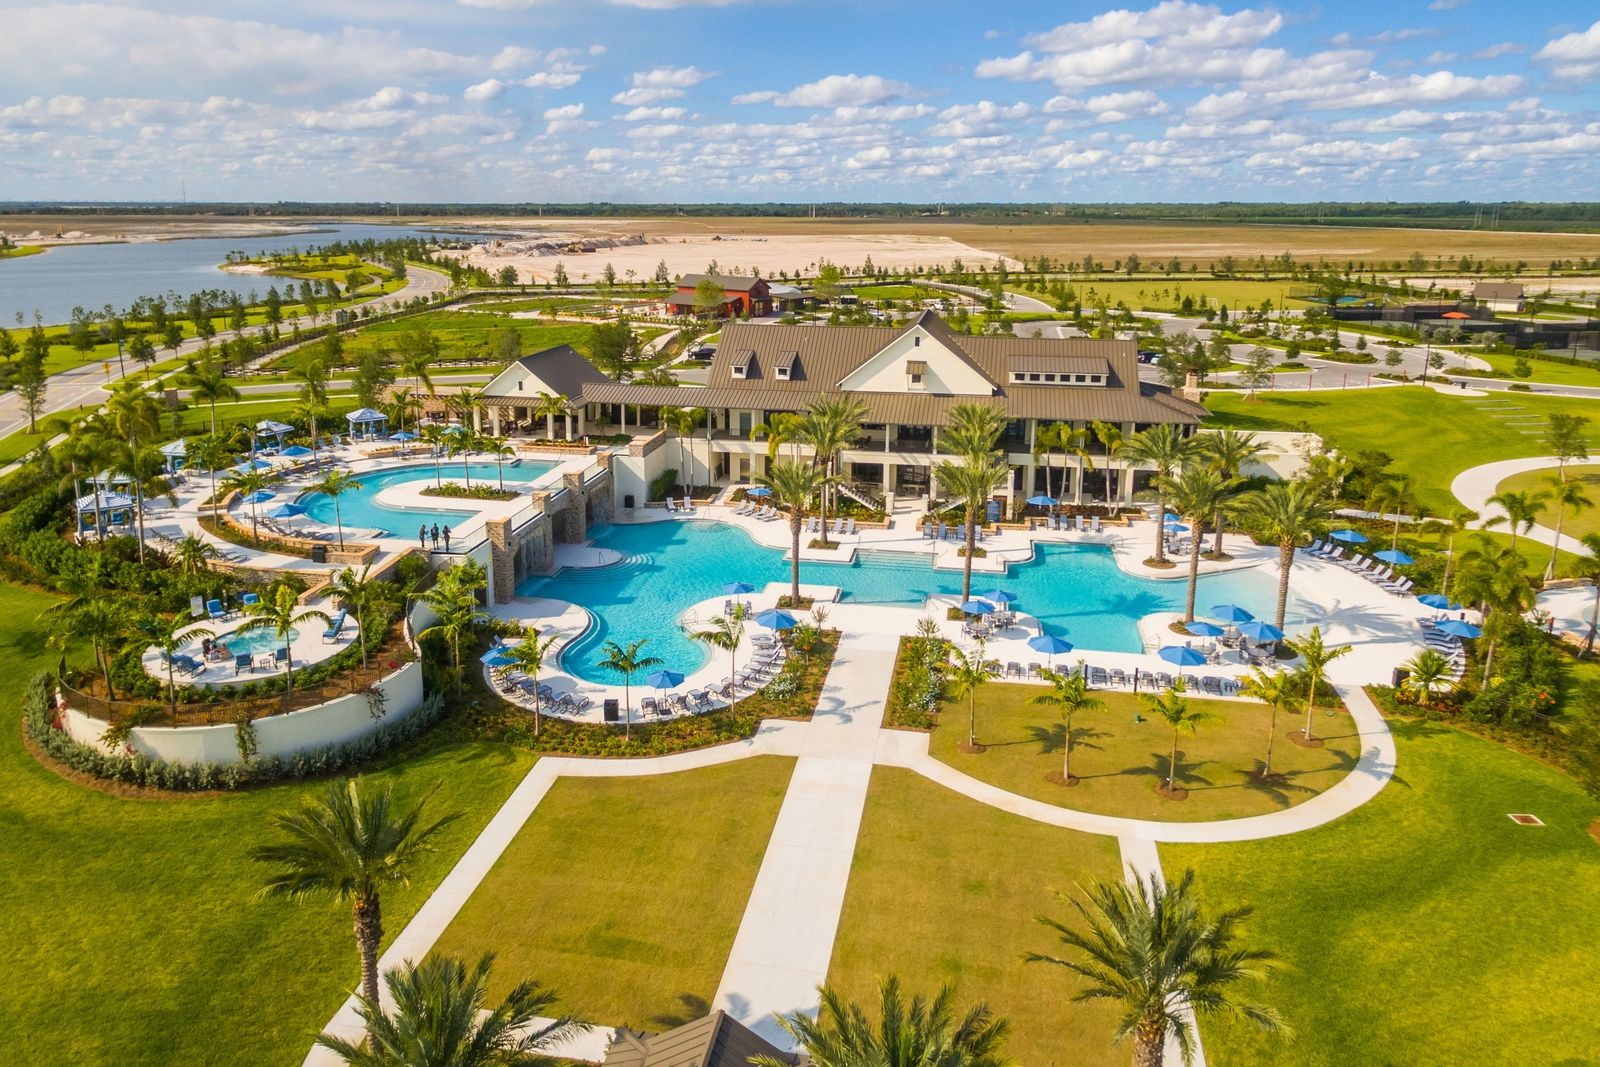 Vacation-Worthy Amenities for the Whole Family to Enjoy:Arden features best-in-class amenitiesincluding a clubhouse, resort-style pool and fitness center. Our zero-entry two level pool is the perfect spot to soak in the sun!Click here to schedule a tour.